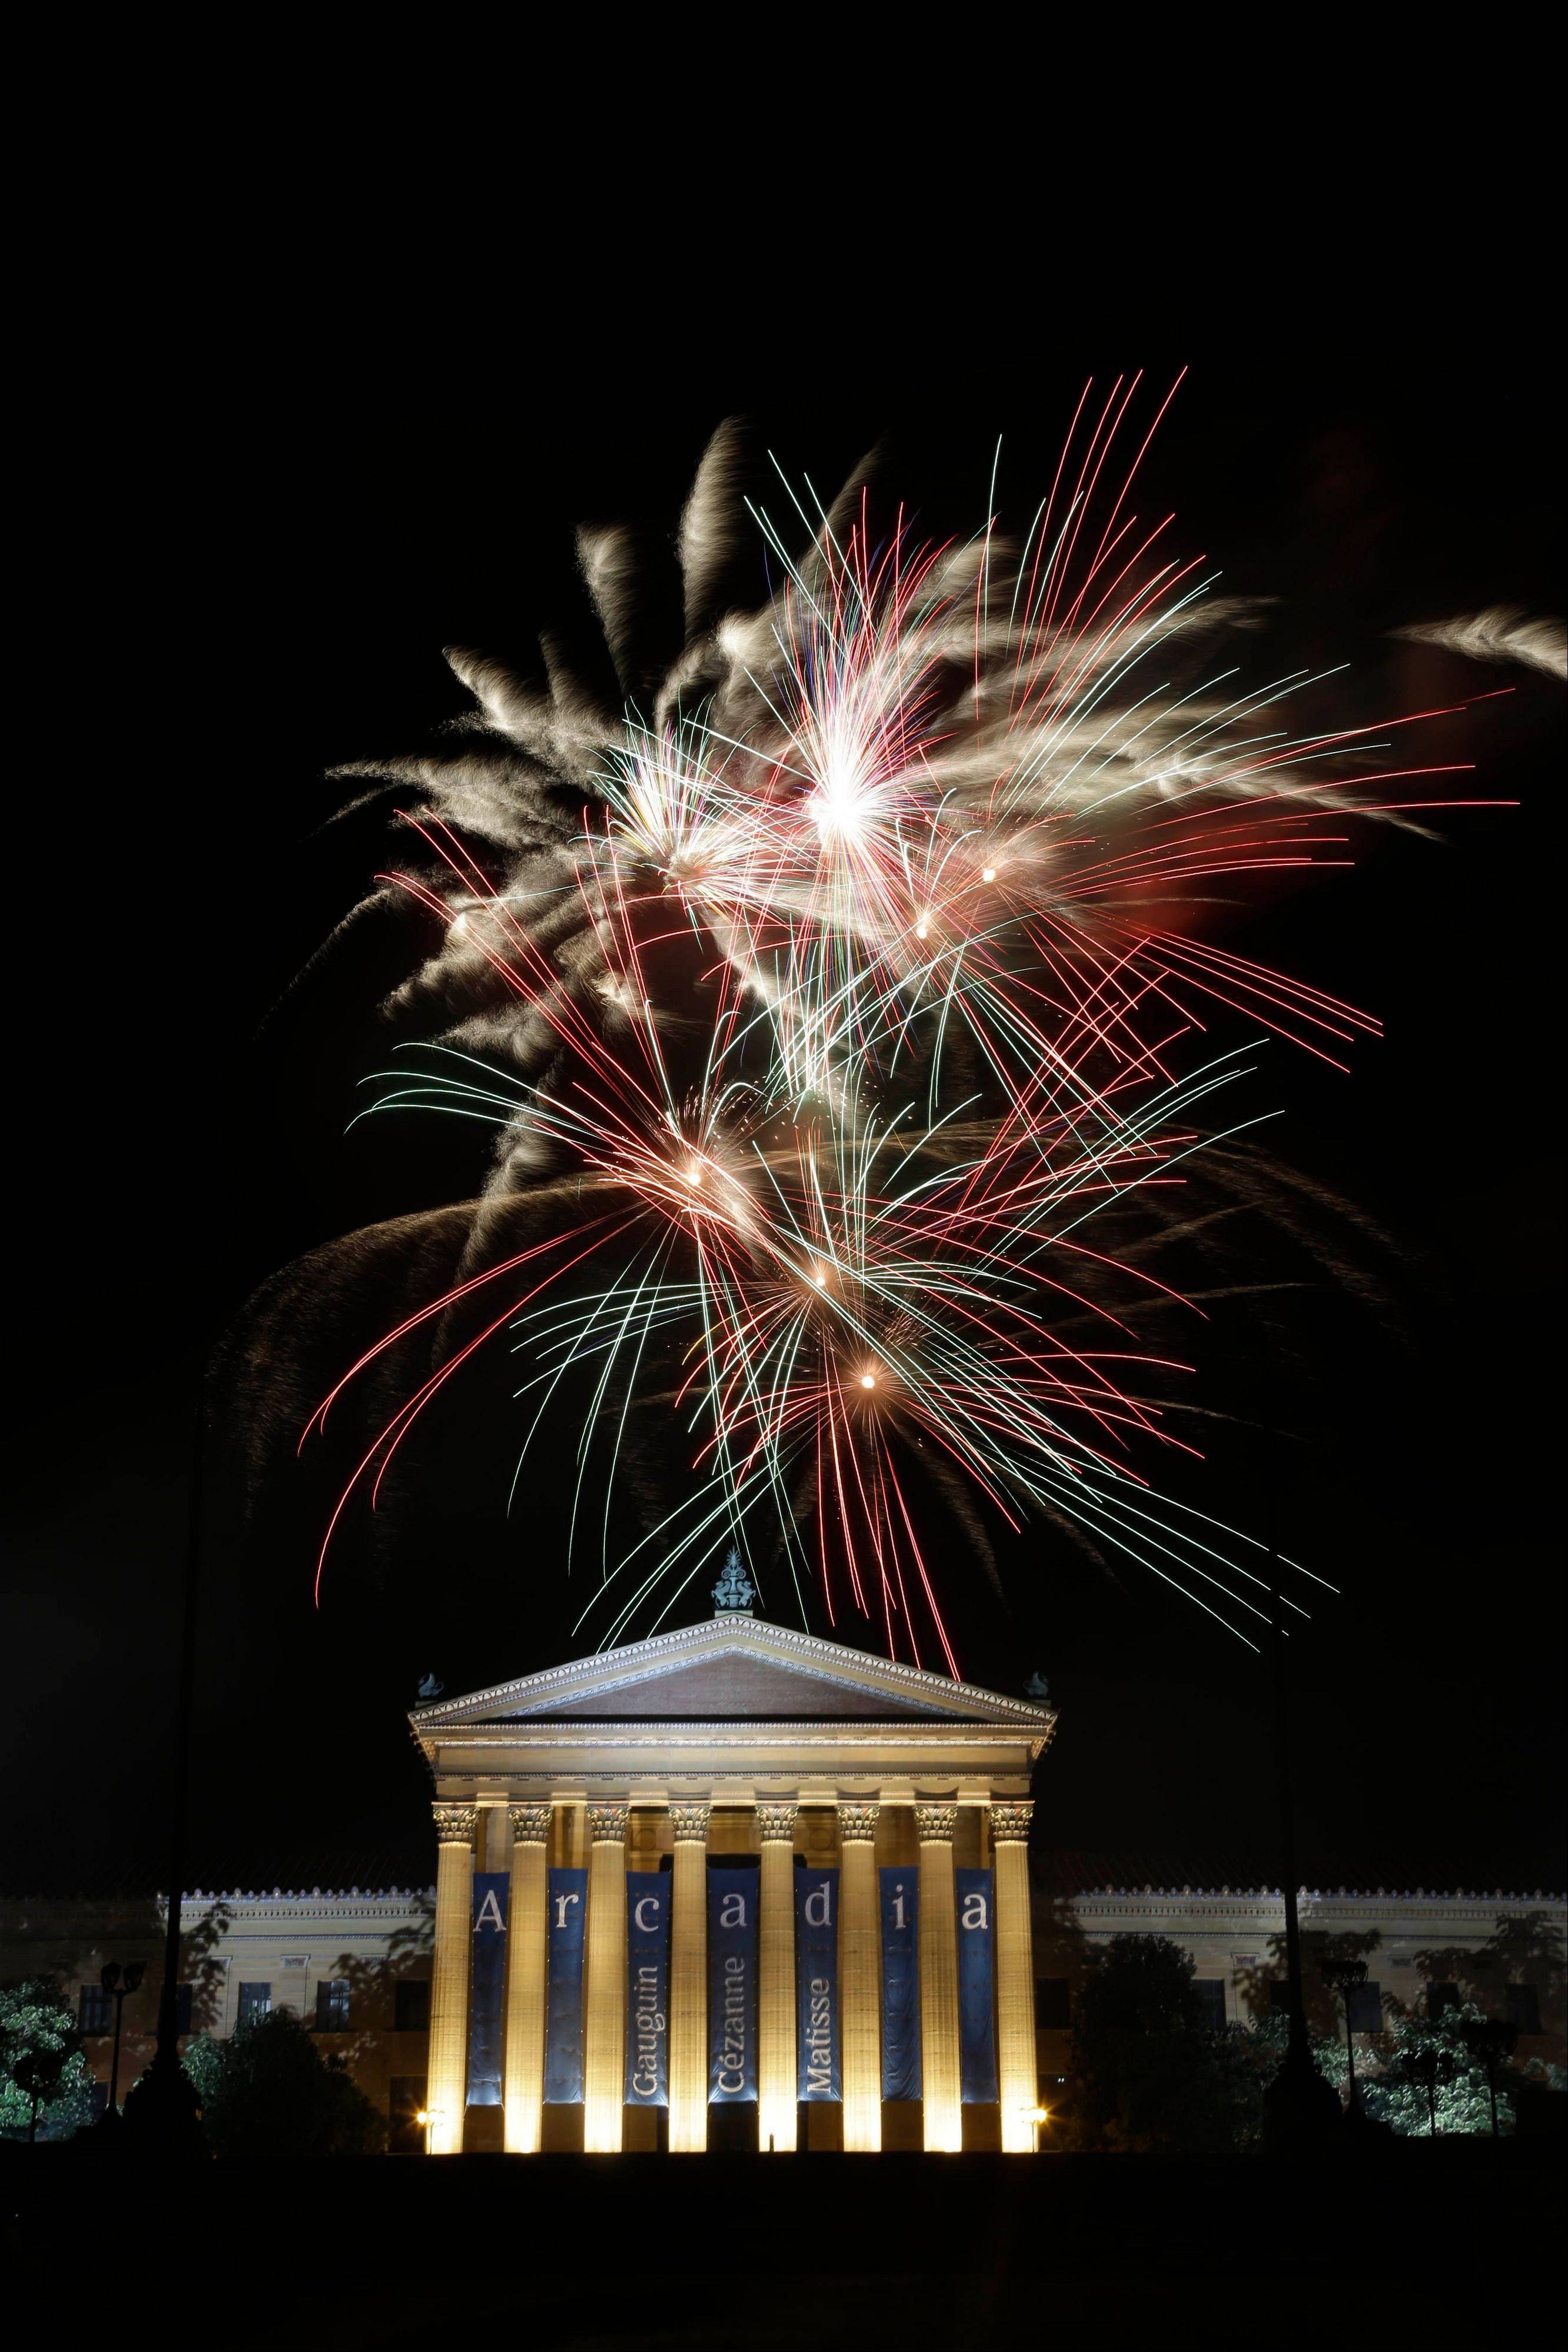 Fireworks light up the sky over the Philadelphia Museum of Art during an Independence Day celebration, Wednesday, July 4, 2012, in Philadelphia.